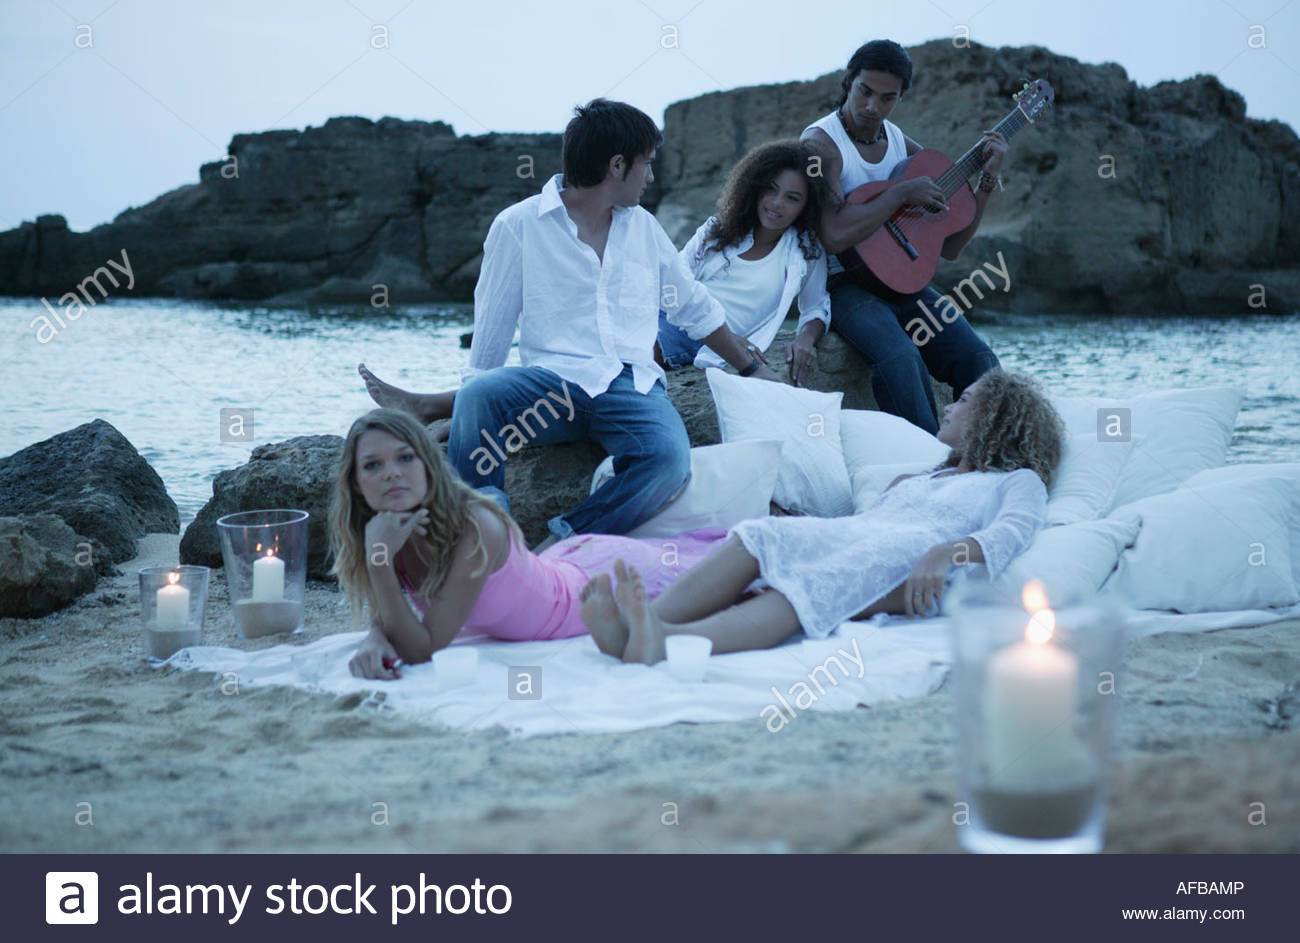 Two young men and three young women on the beach - Stock Image